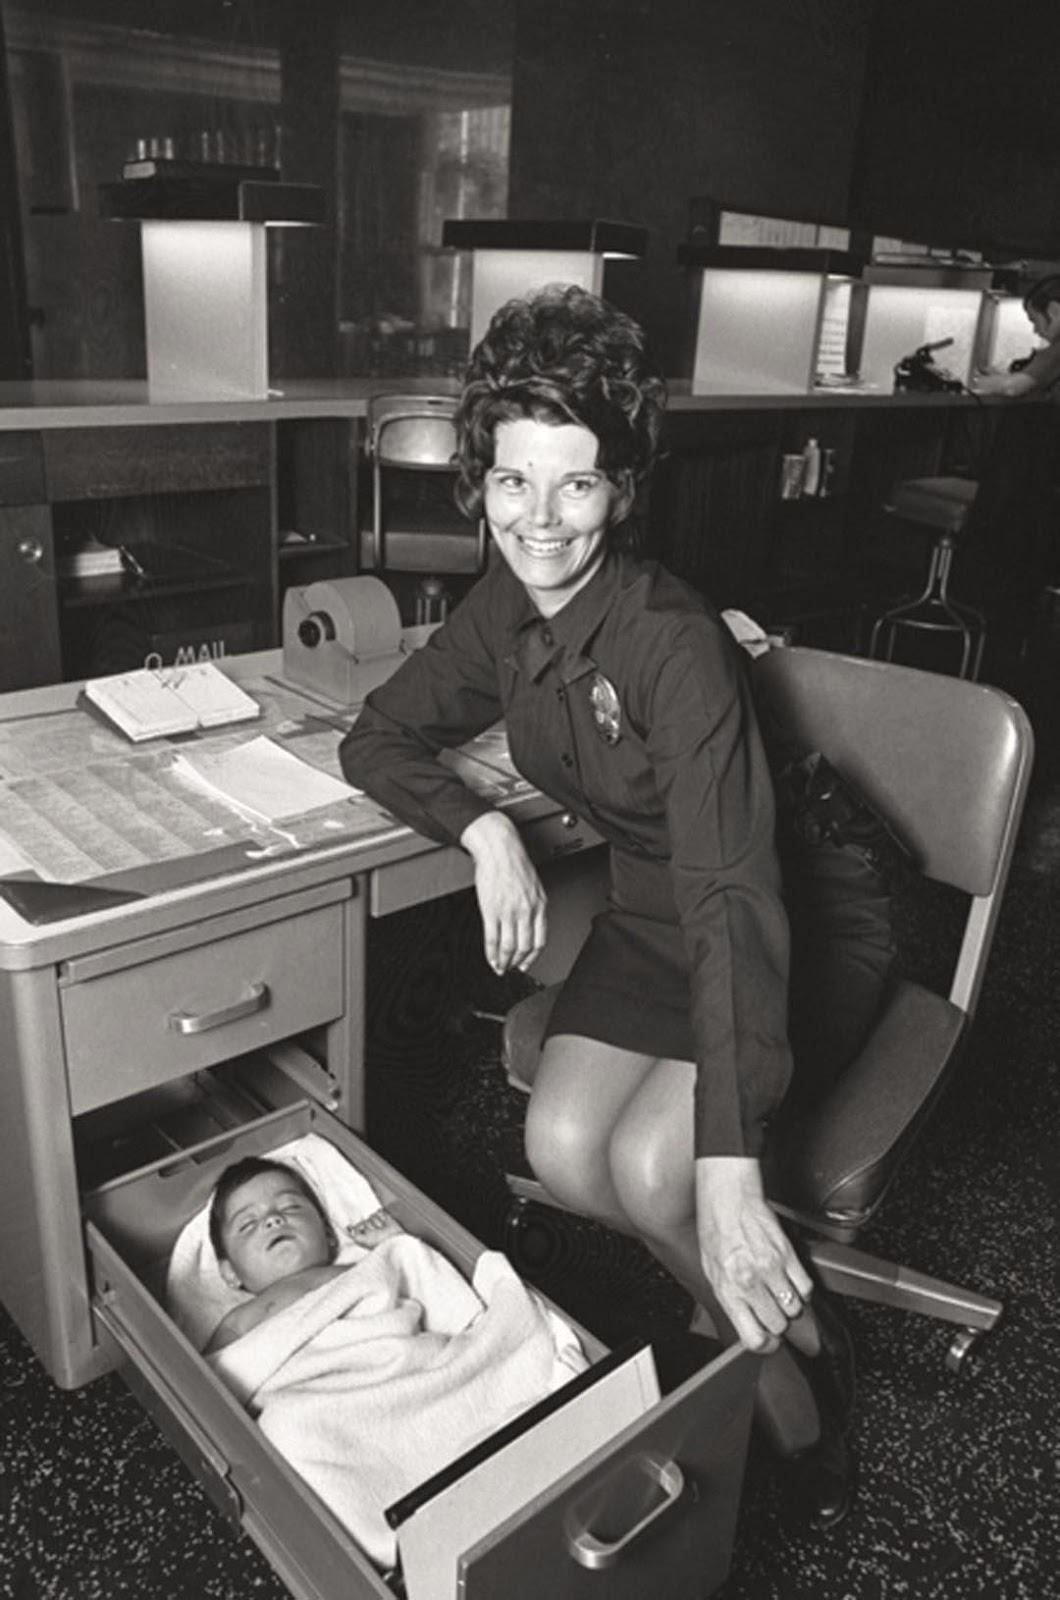 Abandoned Baby Sleeping in Desk Drawer at Los Angeles Police Station, 1971